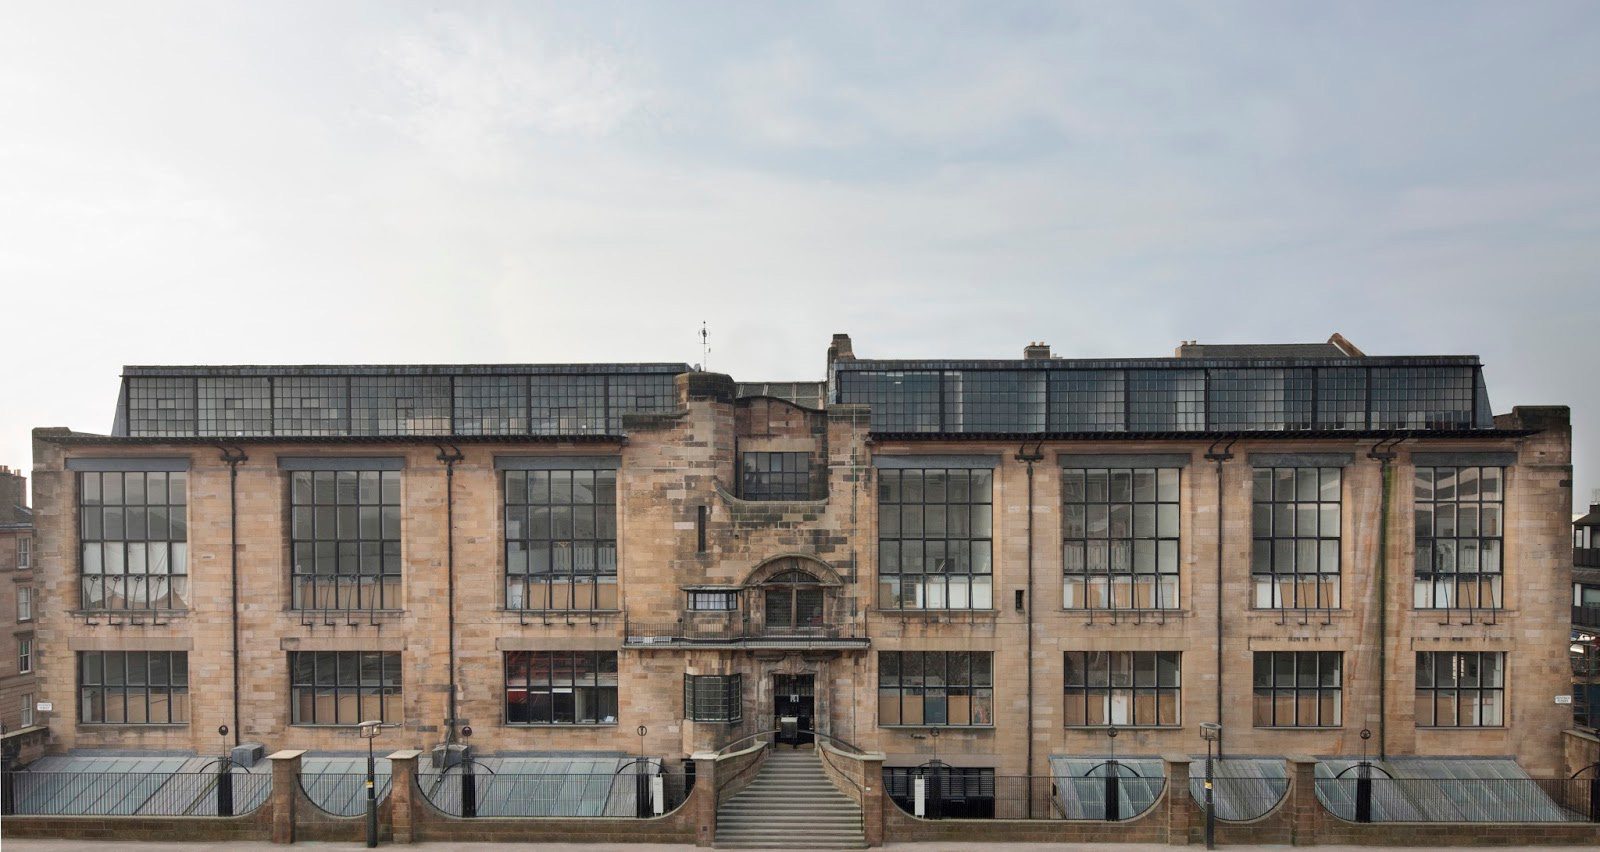 The Glasgow School of Art's Mackintosh Building as it was before the 2014 fire. Photography: Alan McAteer / Glasgow School of Art